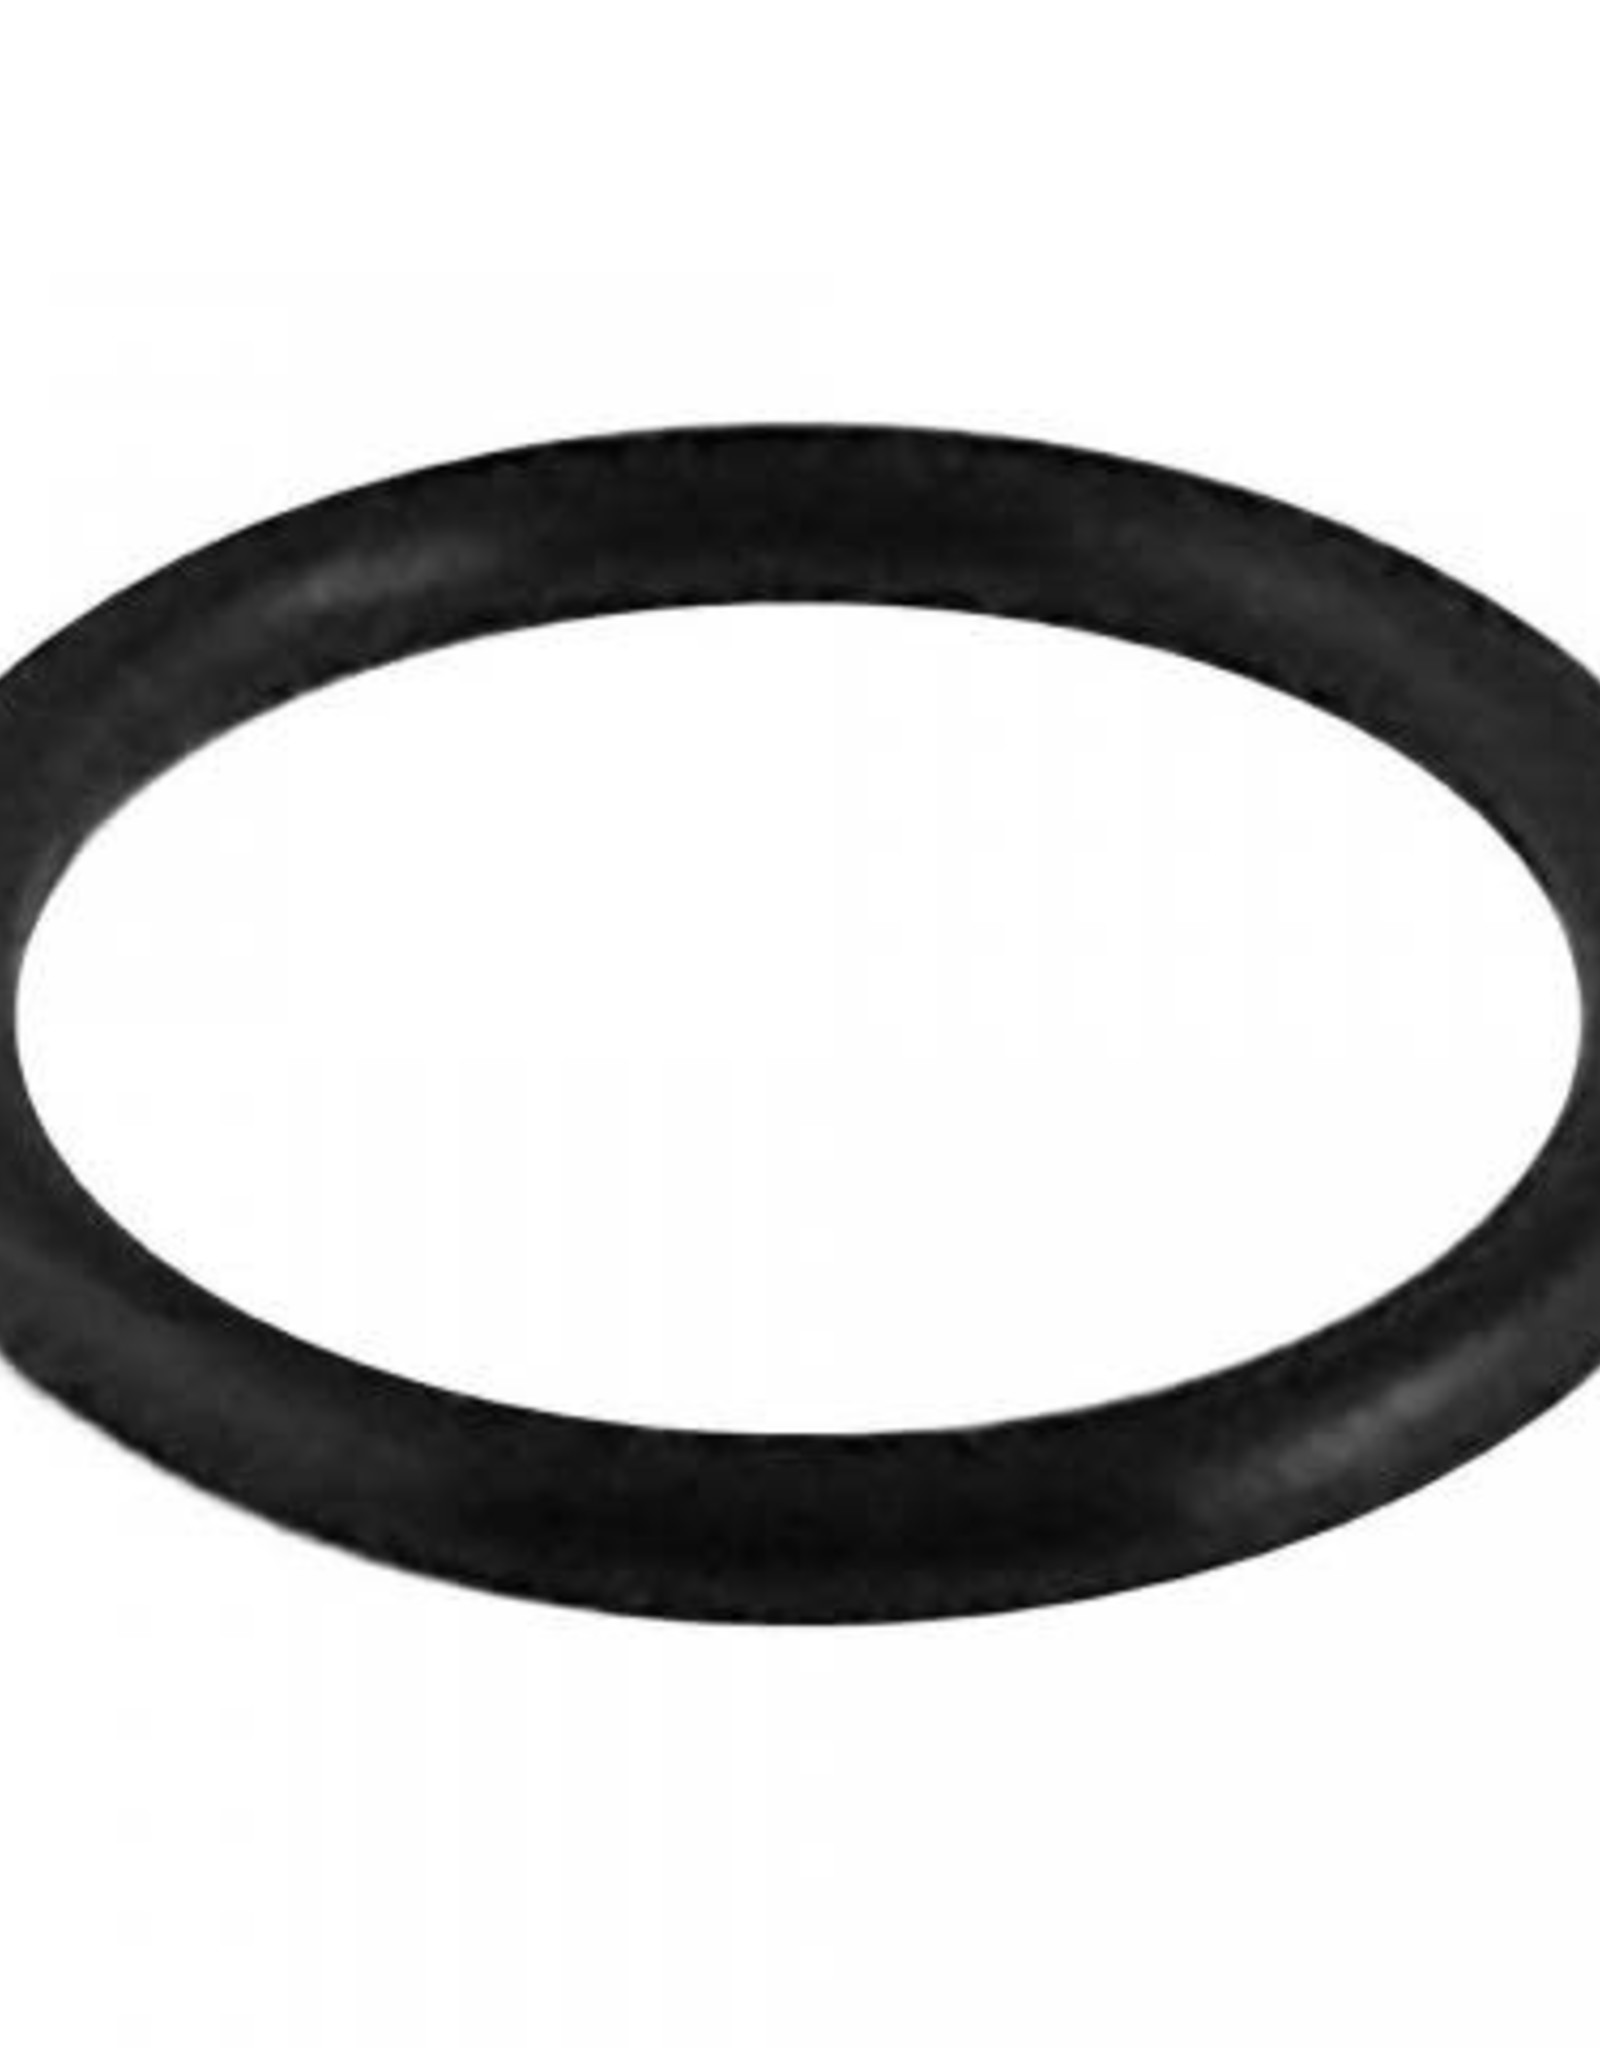 O-ring For 2.5# Aluminum Cylinder Valves